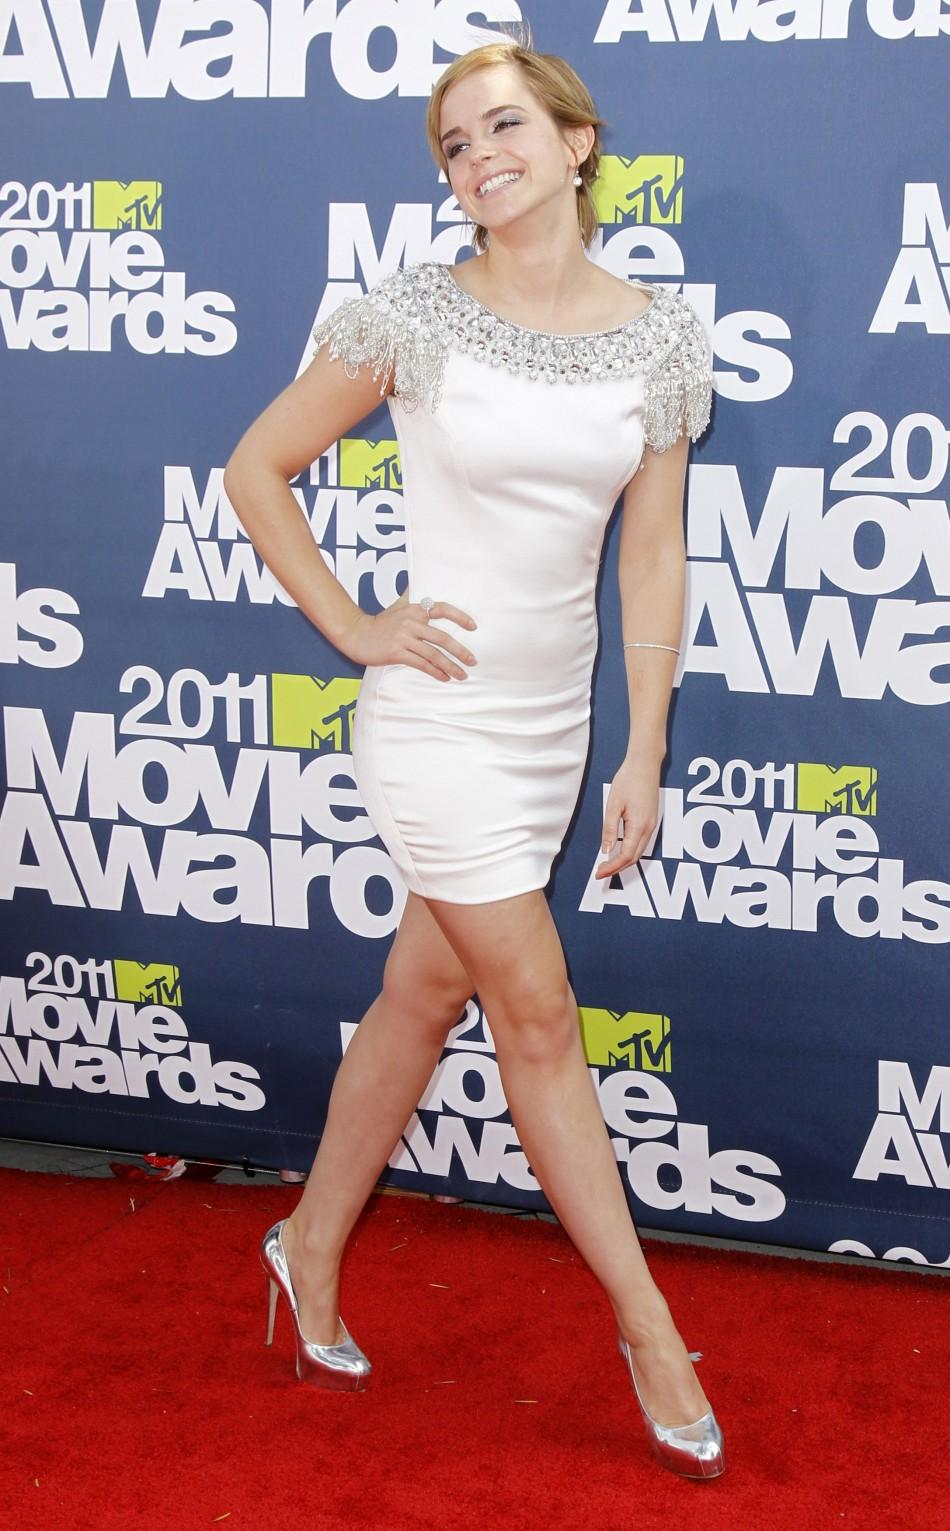 British actress Emma Watson arrives at the 2011 MTV Movie Awards in Los Angeles, June 5, 2011.